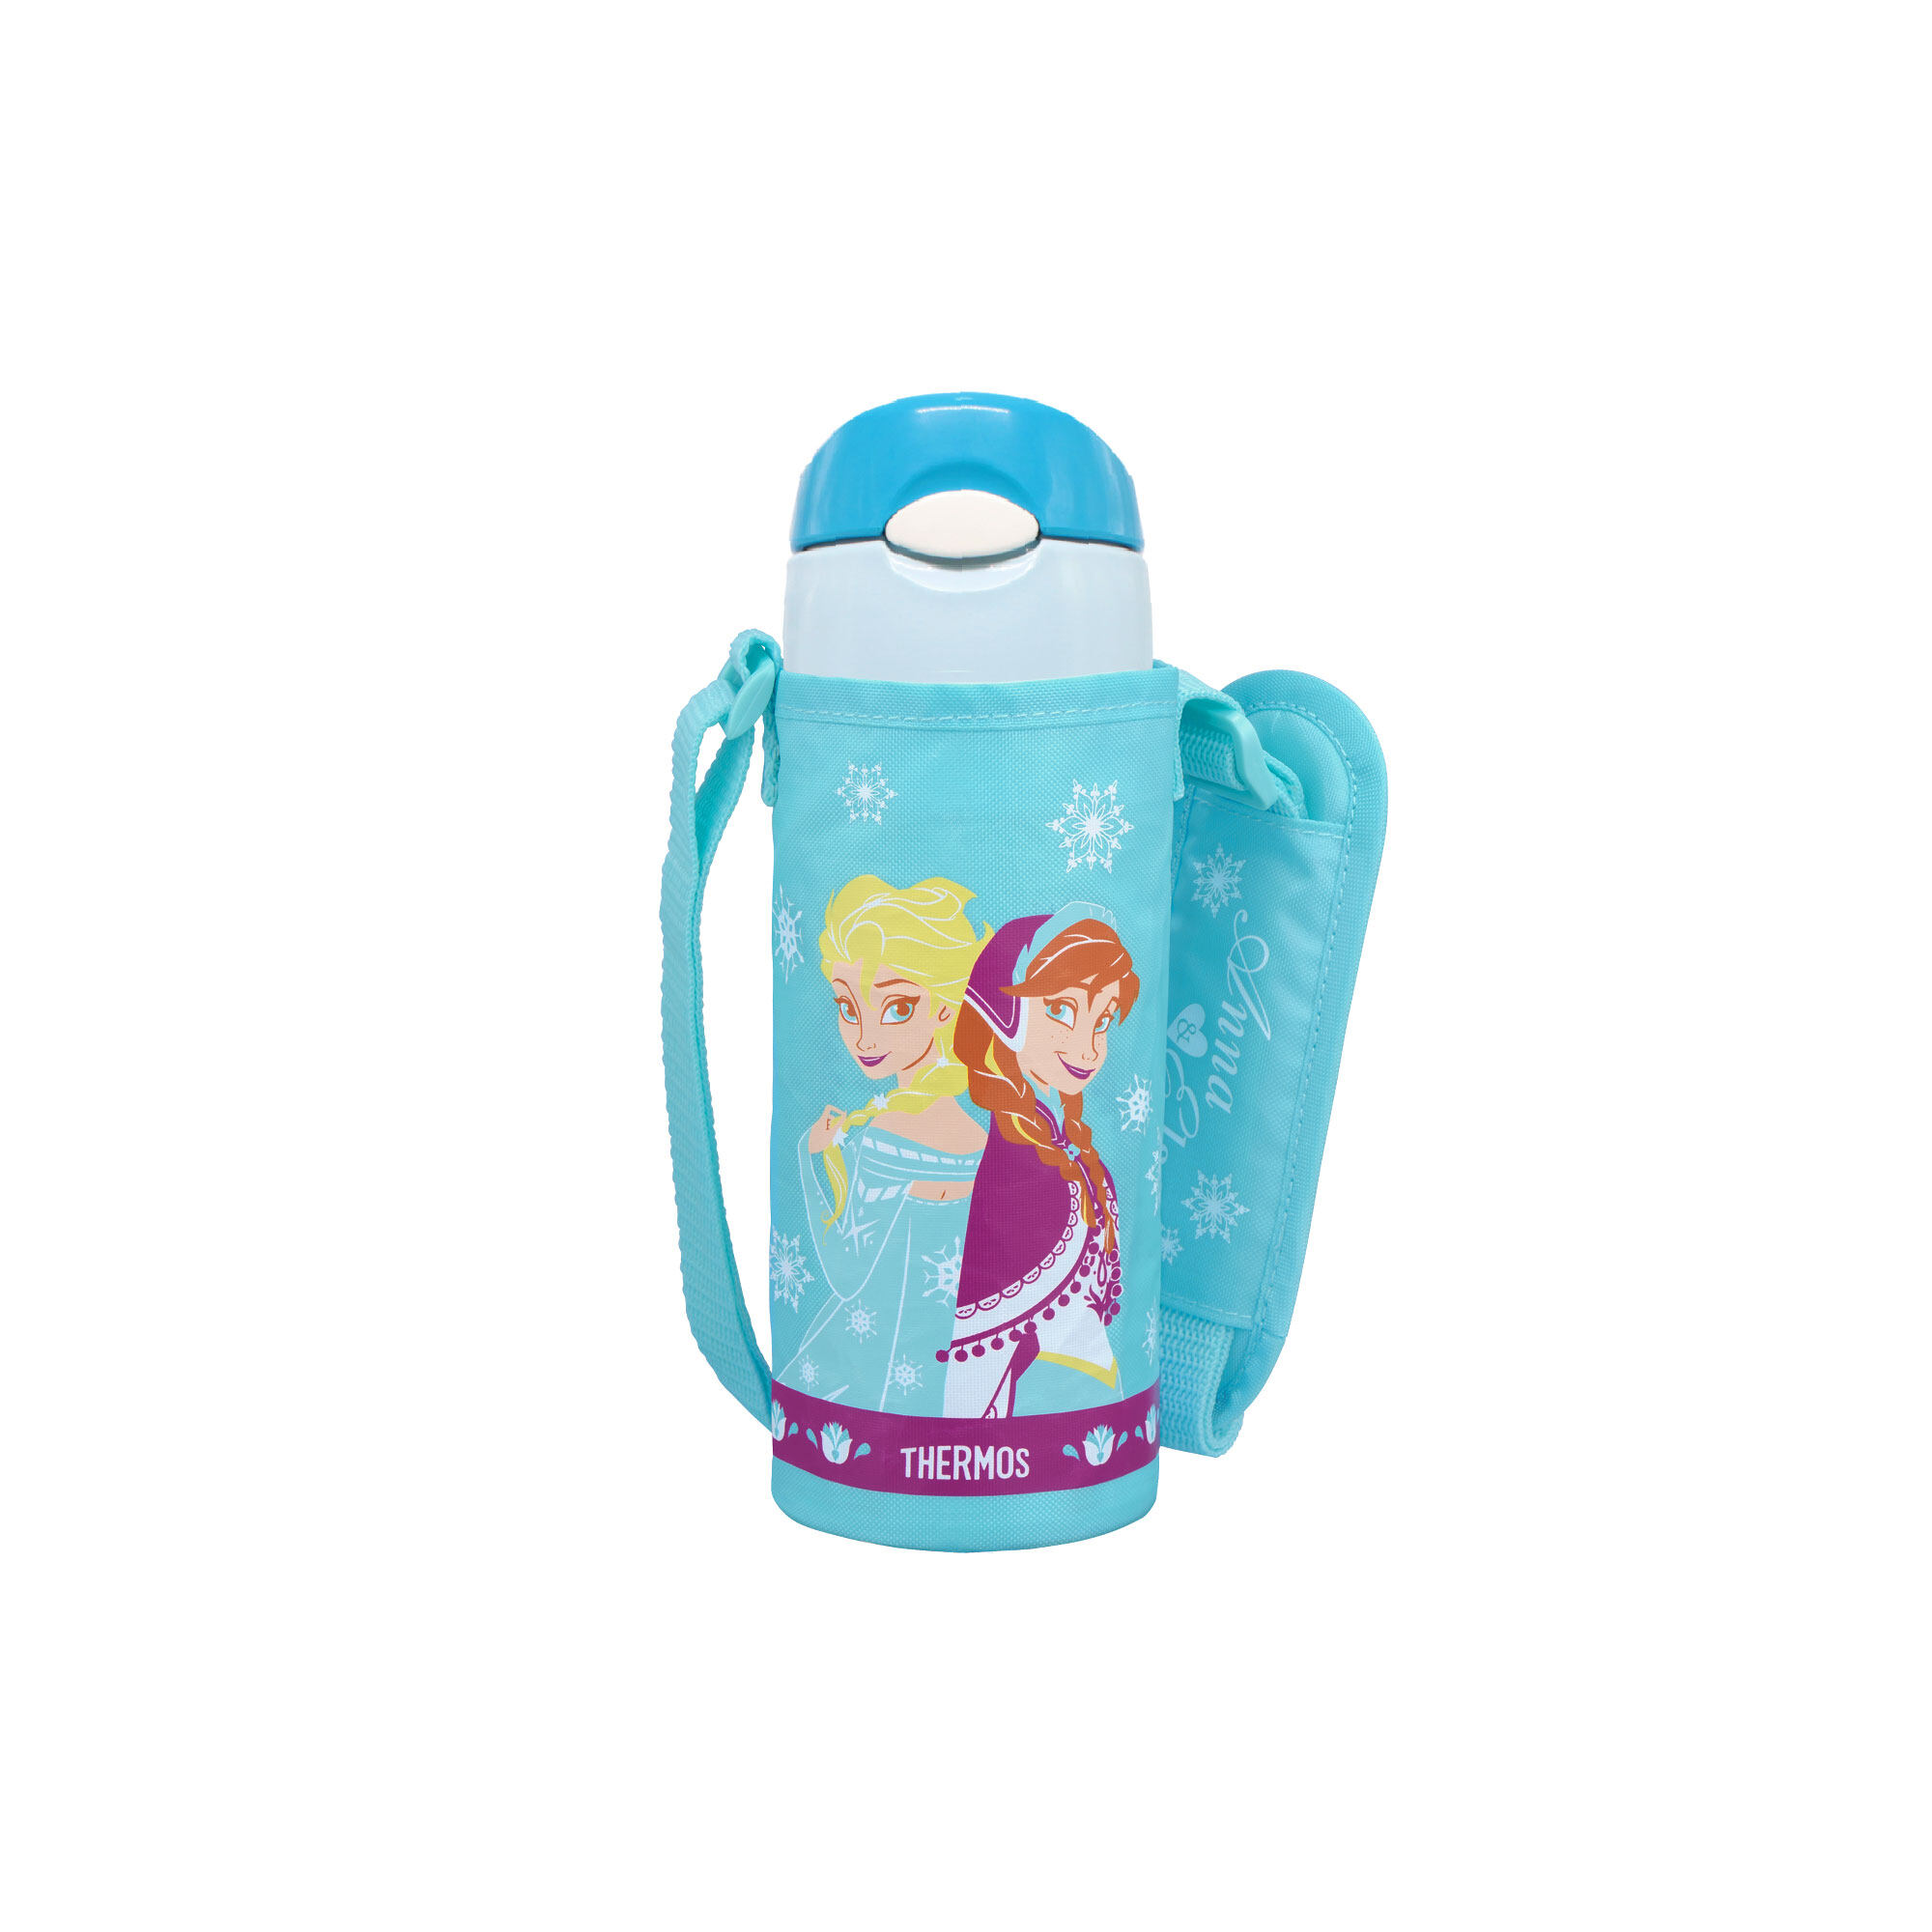 Disney Frozen 2 Princess  Elsa & Anna 400Ml Thermos Stainless Steel Ice Cold Bottle With Bag- Light Blue Colour